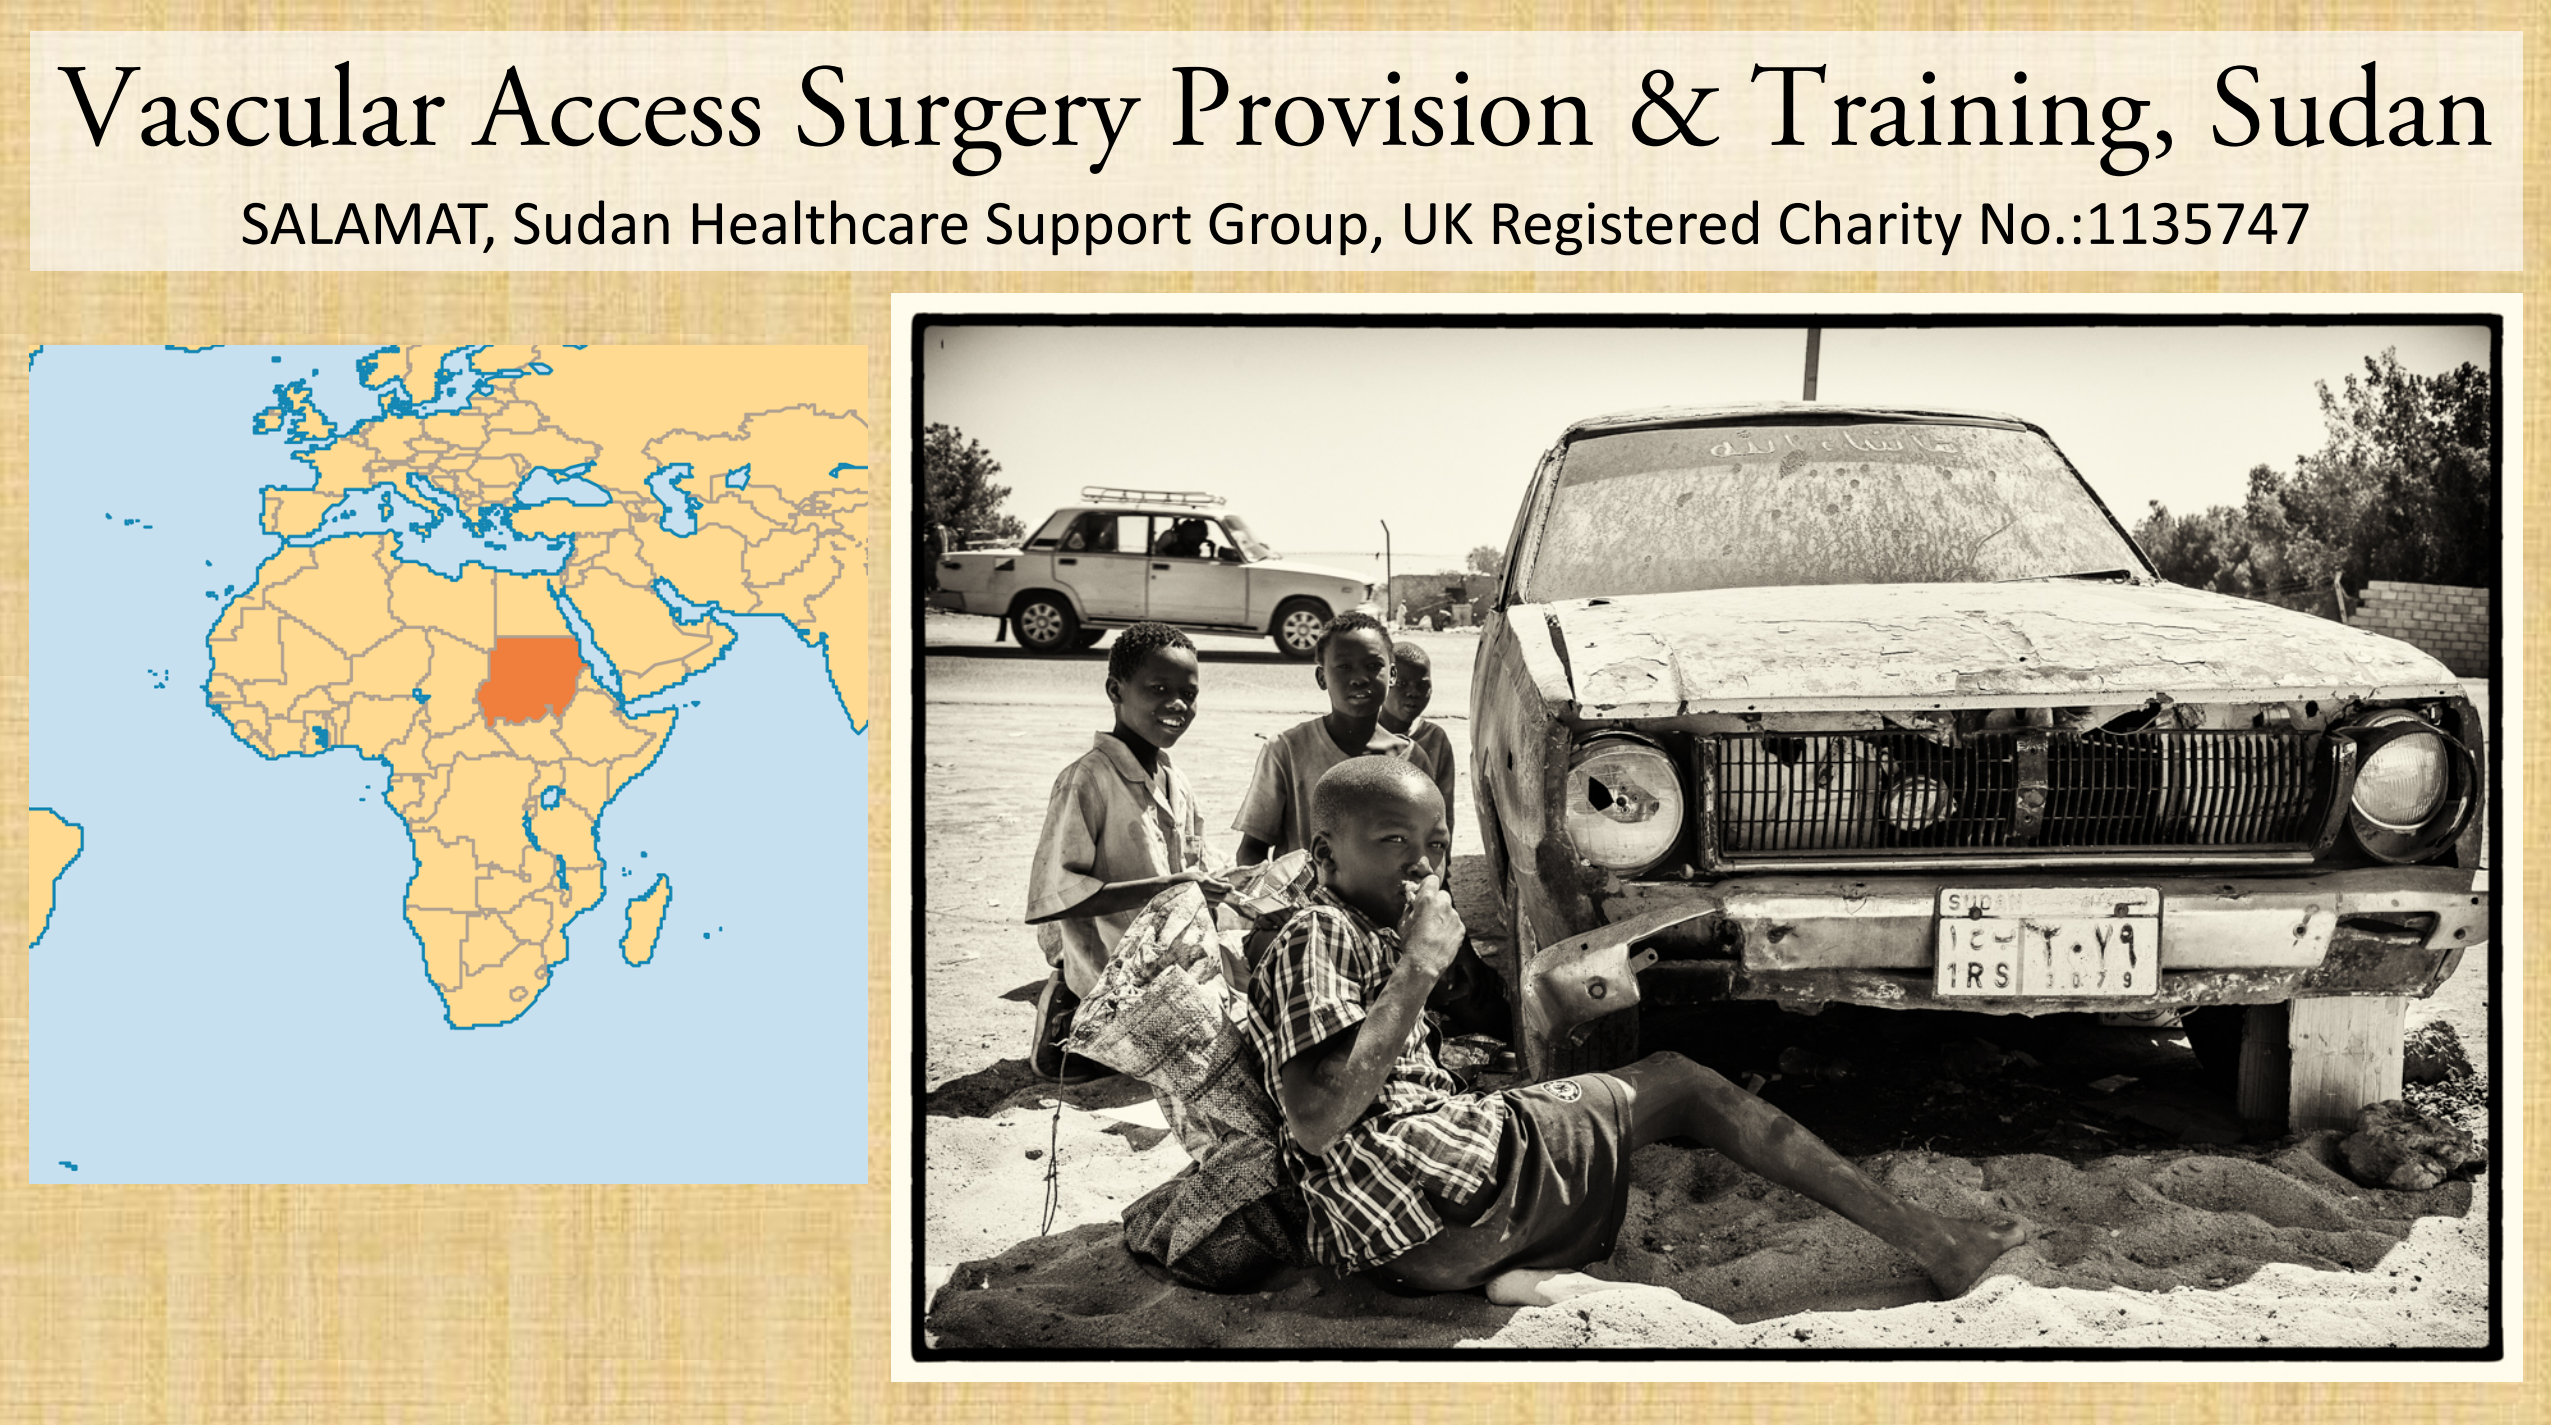 Vascular Access Surgery Provision & Training, Sudan